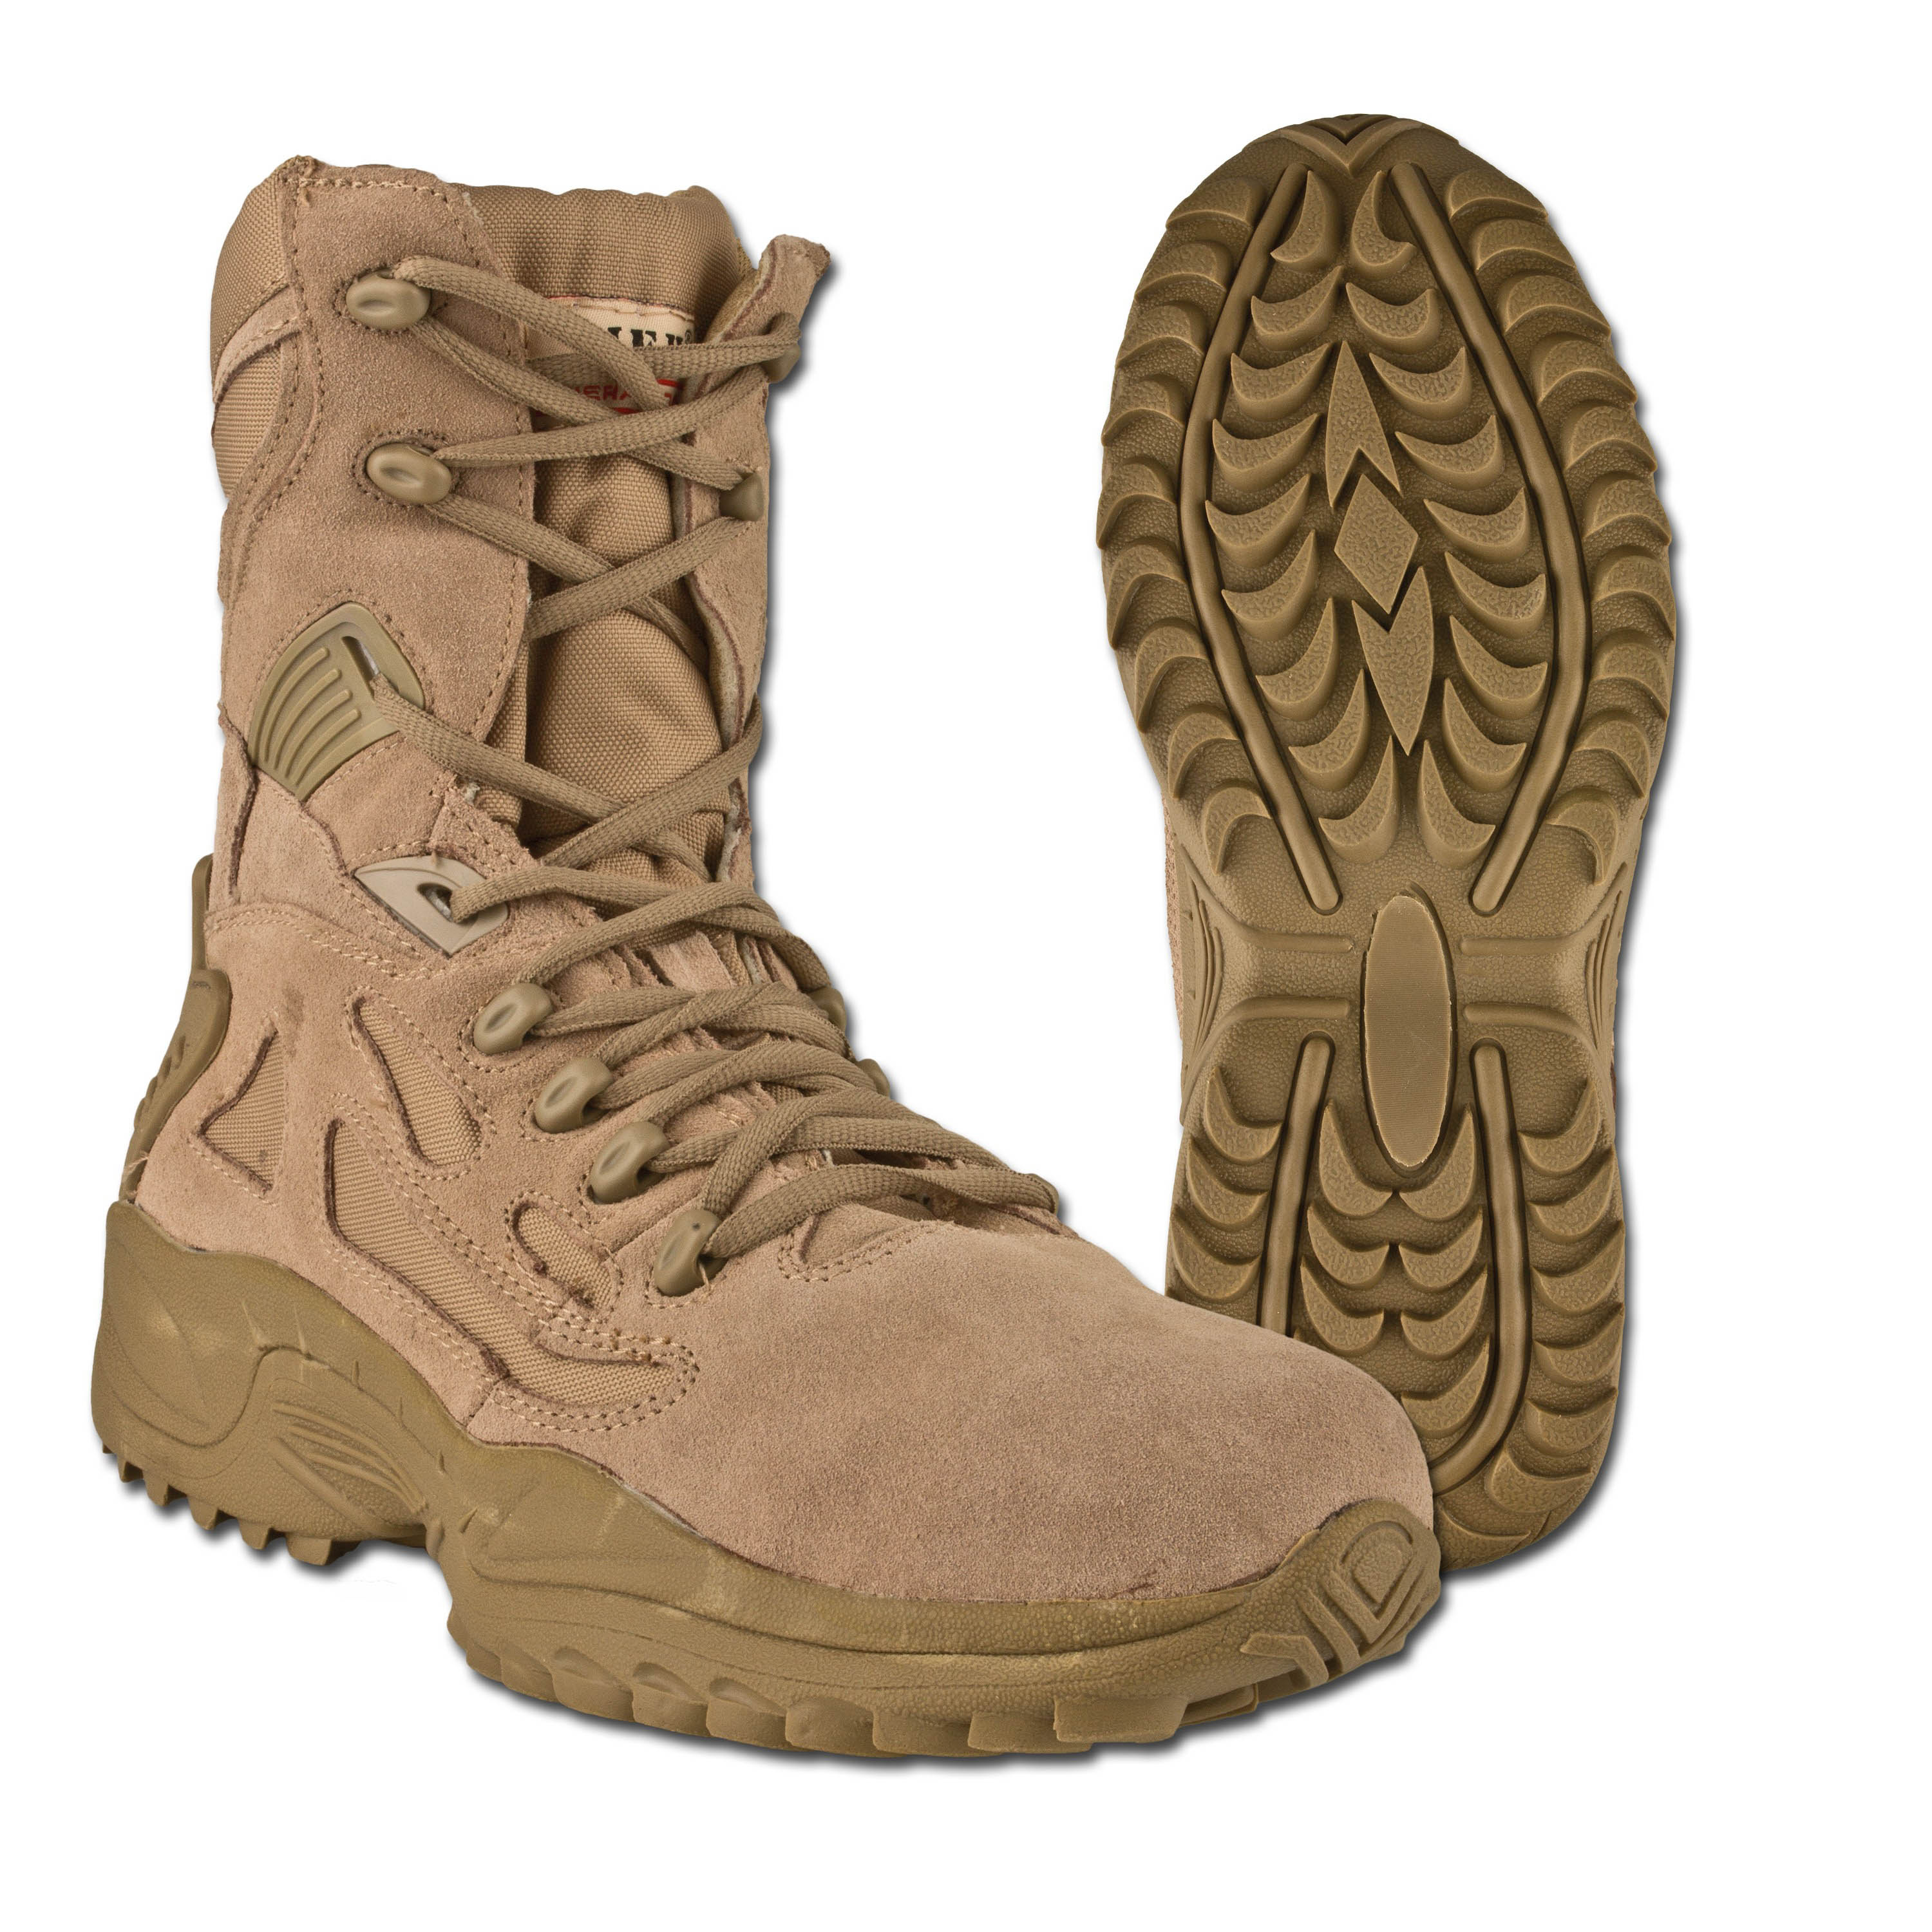 Stiefel MFH Tactical Coyote